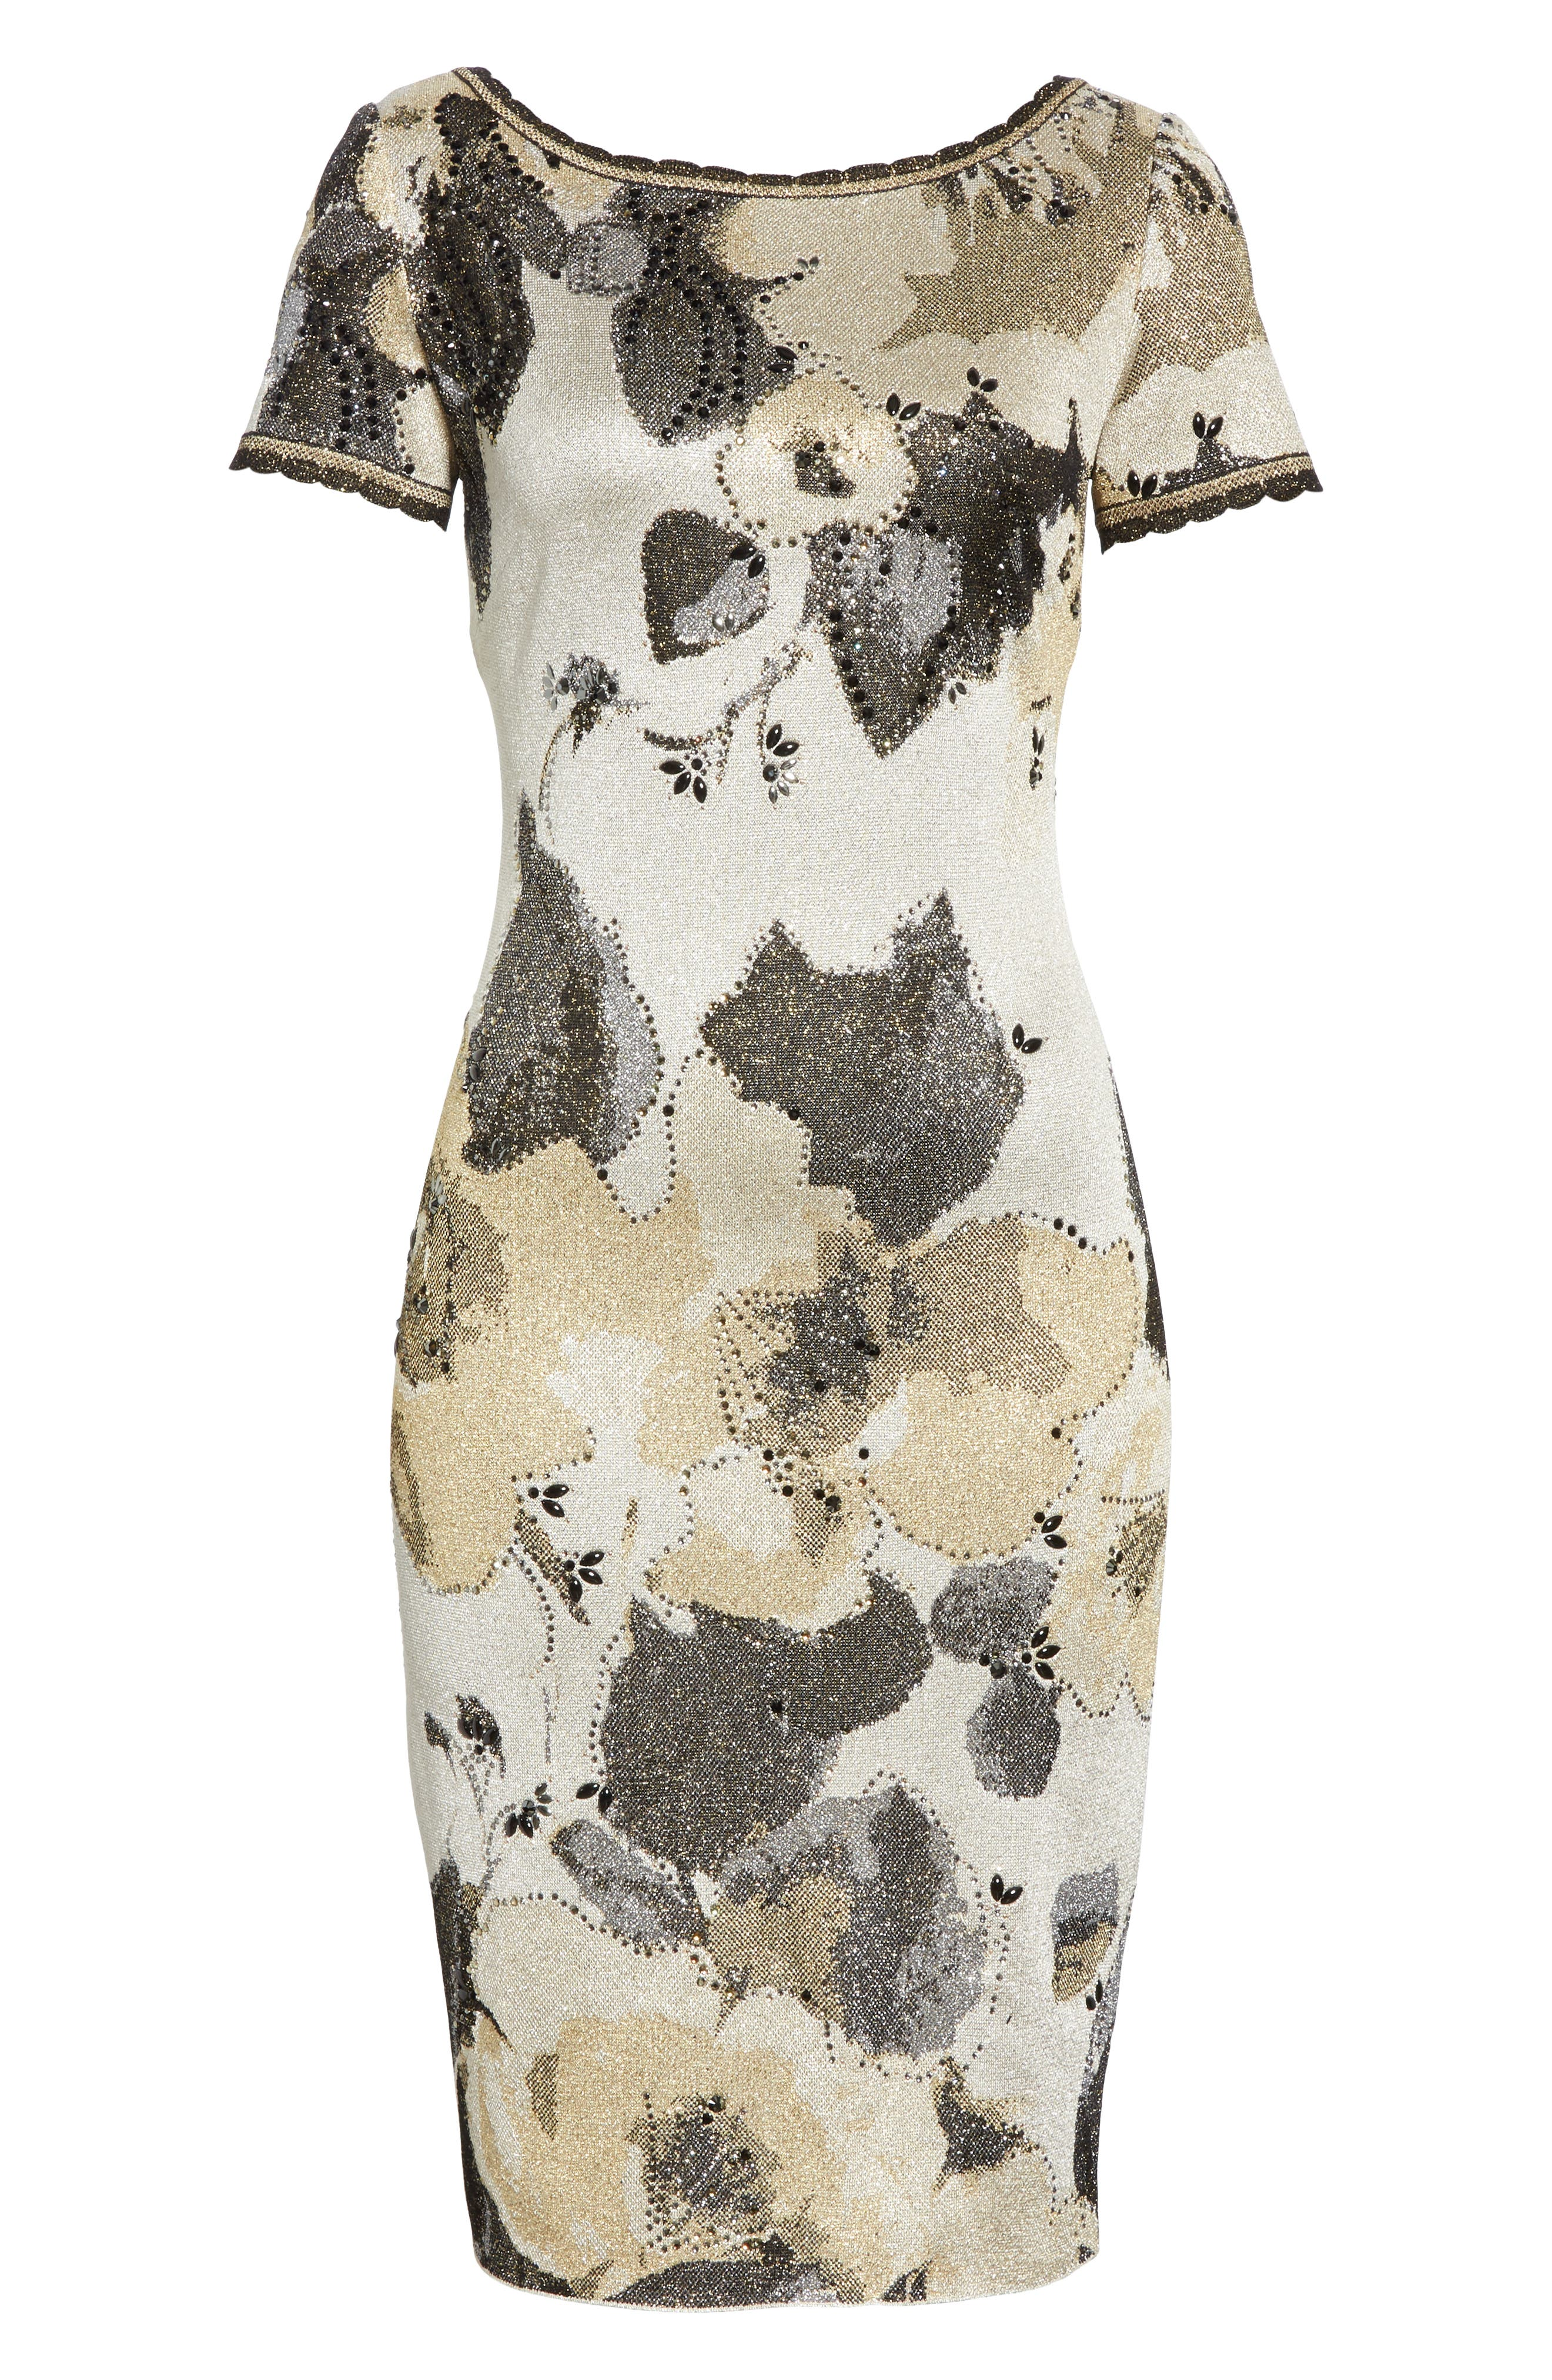 ST. JOHN COLLECTION,                             Gold Leaf Jacquard Knit Dress,                             Alternate thumbnail 7, color,                             METALLIC MULTI